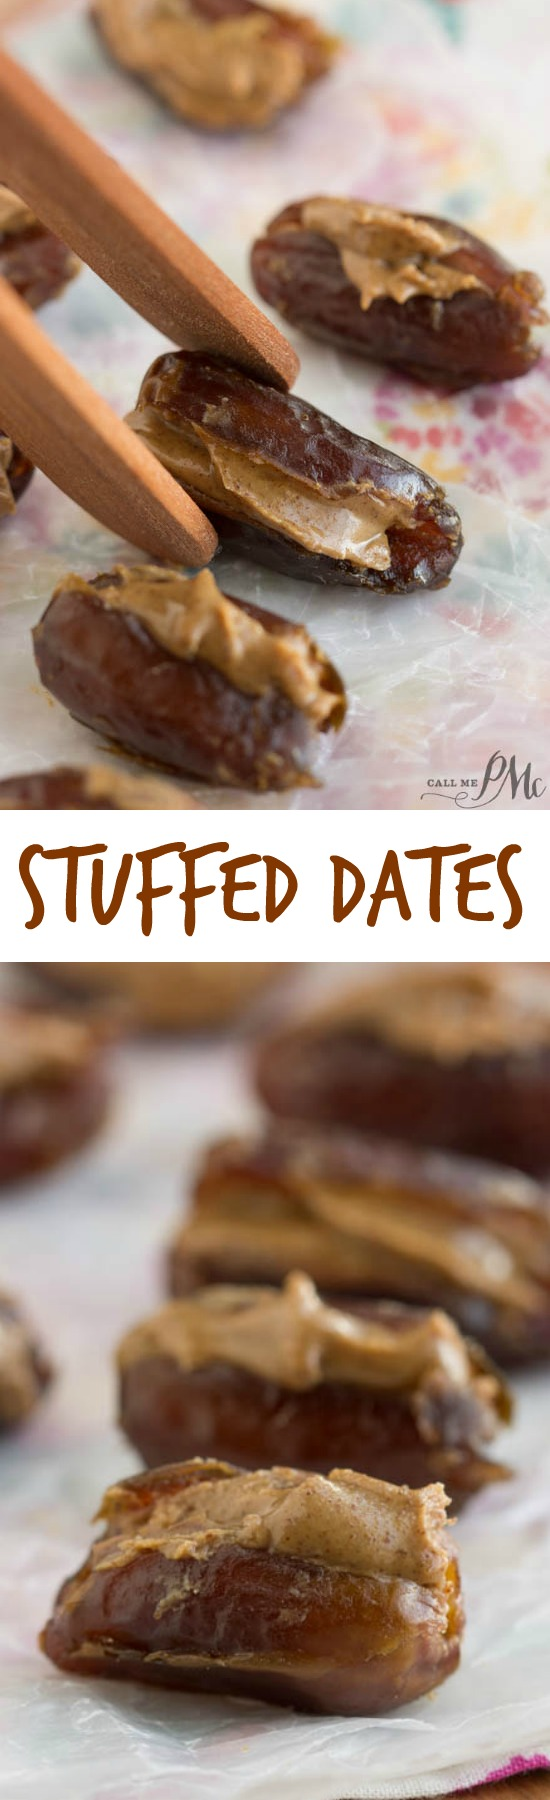 Almond Butter Stuffed Dates make a quick and delicious recipe great for appetizers, your charcuterie board, snacks, pre-workout energy, or sweet cravings. They are wonderful and will provide you with long-lasting energy!